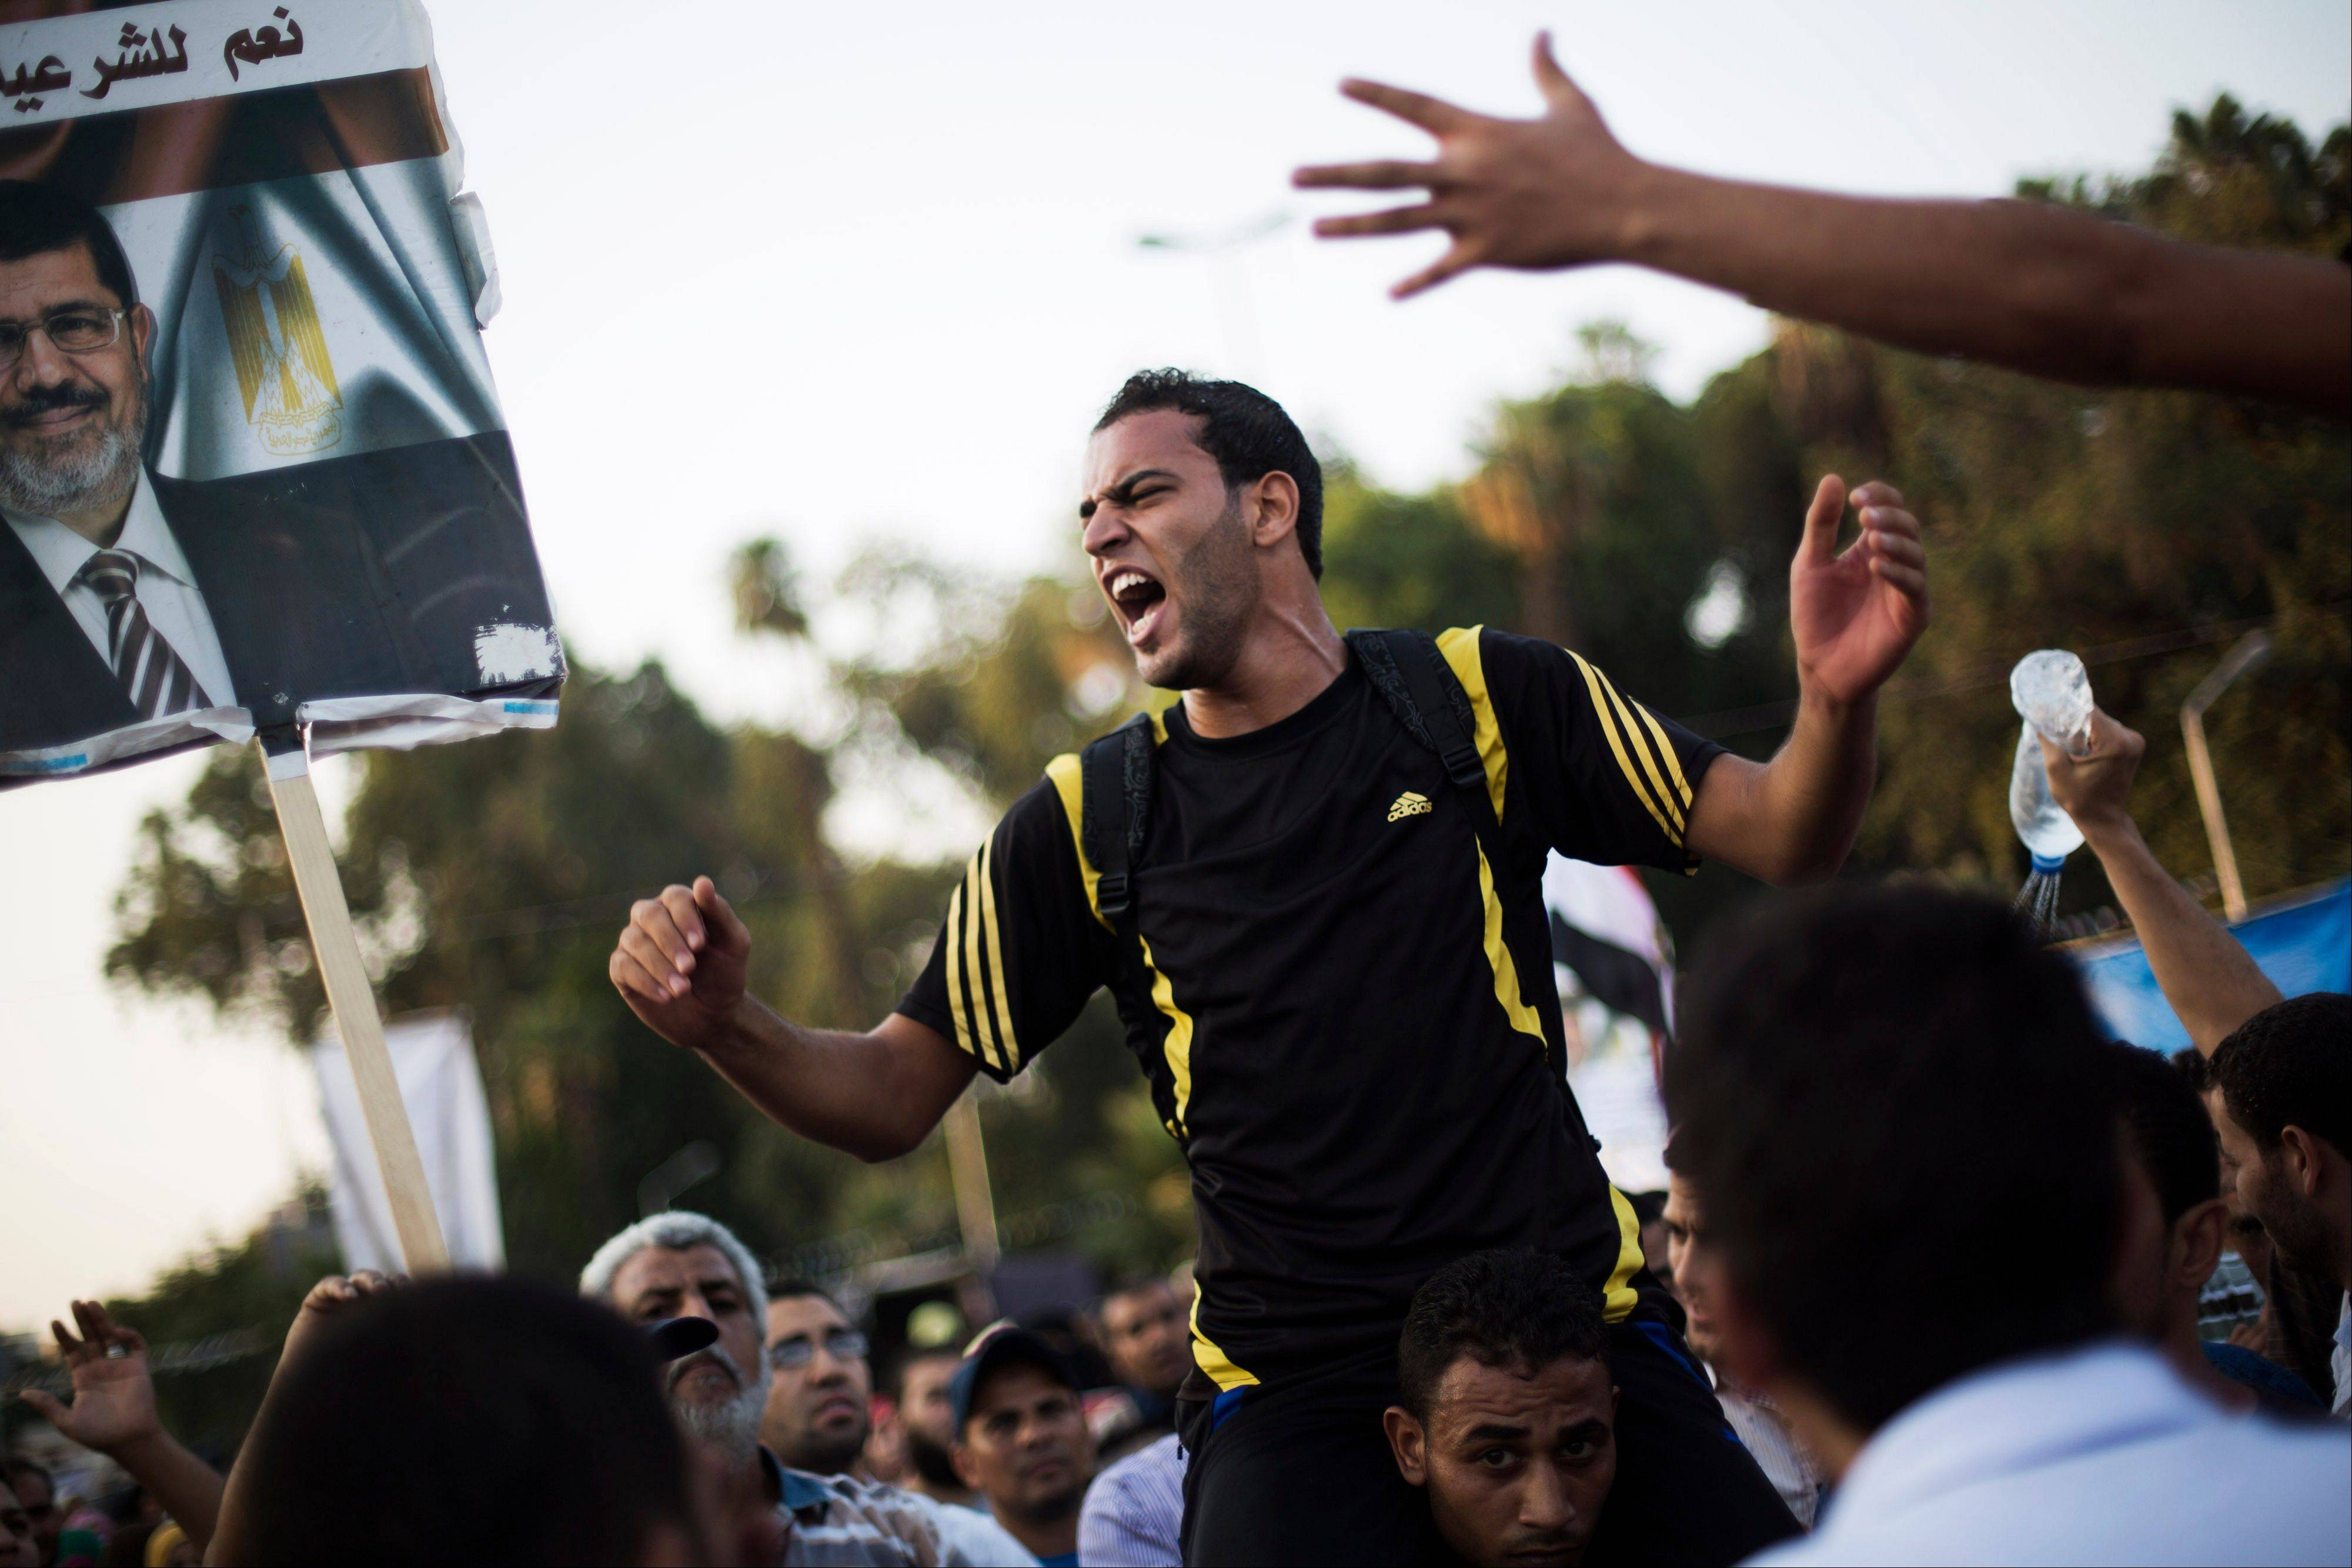 Supporters of Egypt's ousted President Mohammed Morsi chant slogans supporting the former leader during a protest near Cairo University in Giza, Egypt, Sunday.